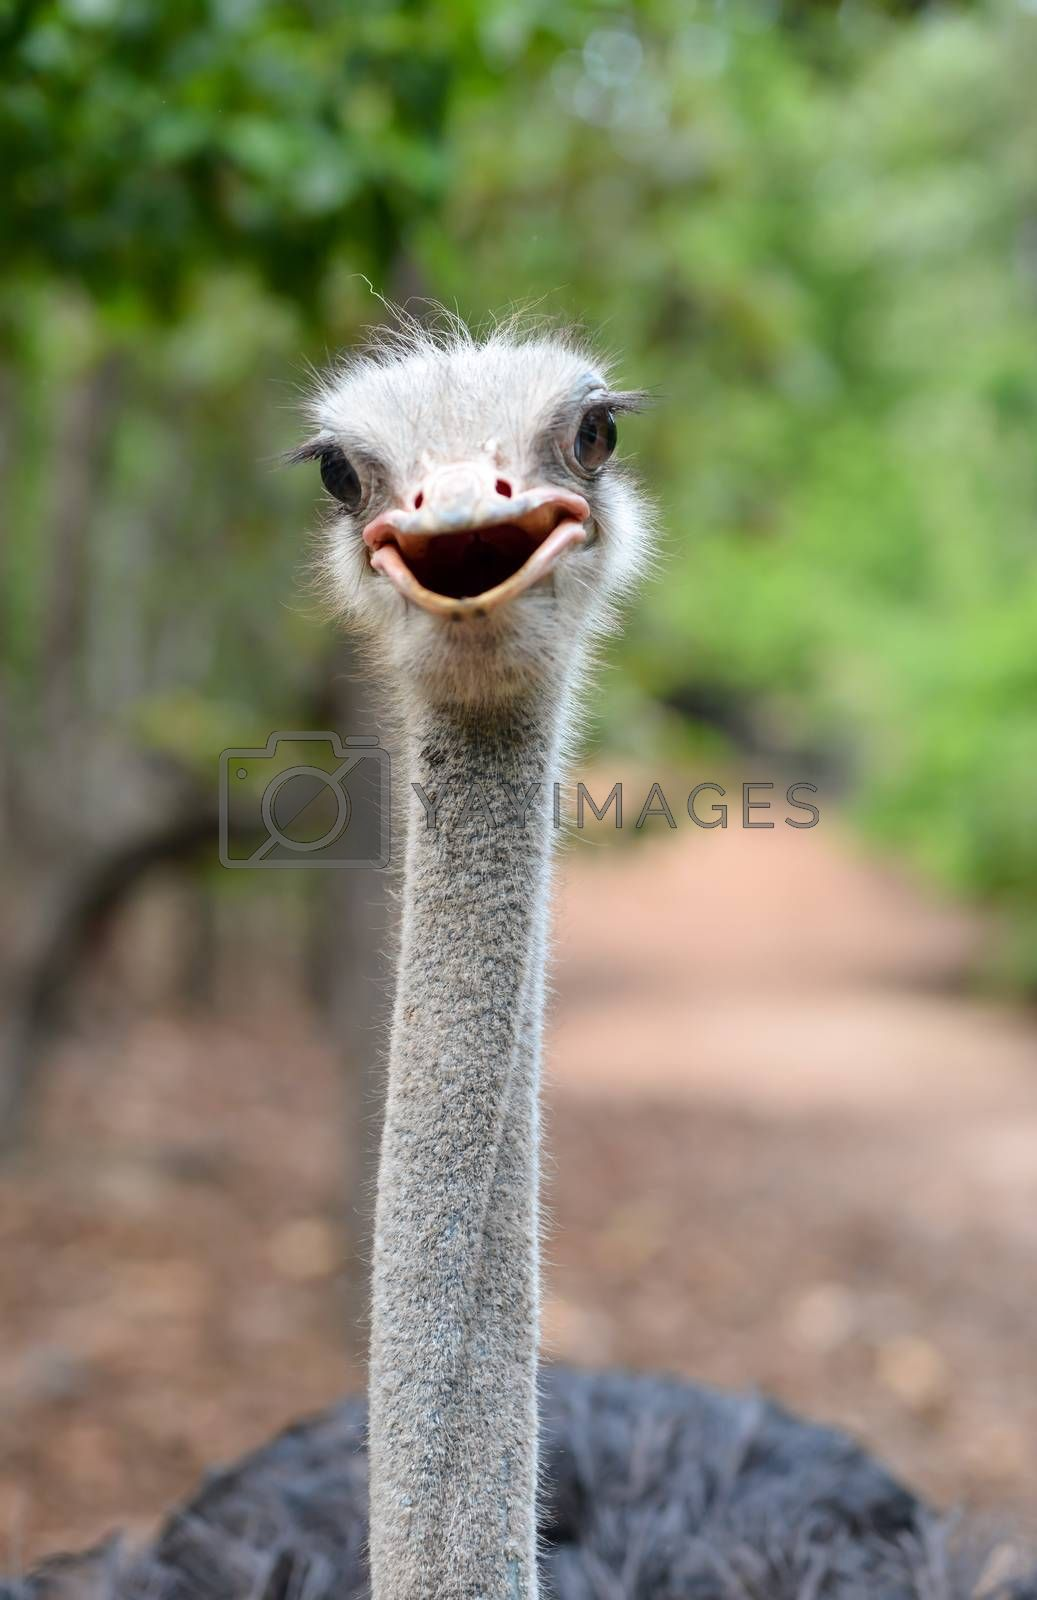 Royalty free image of ostrich head by anankkml